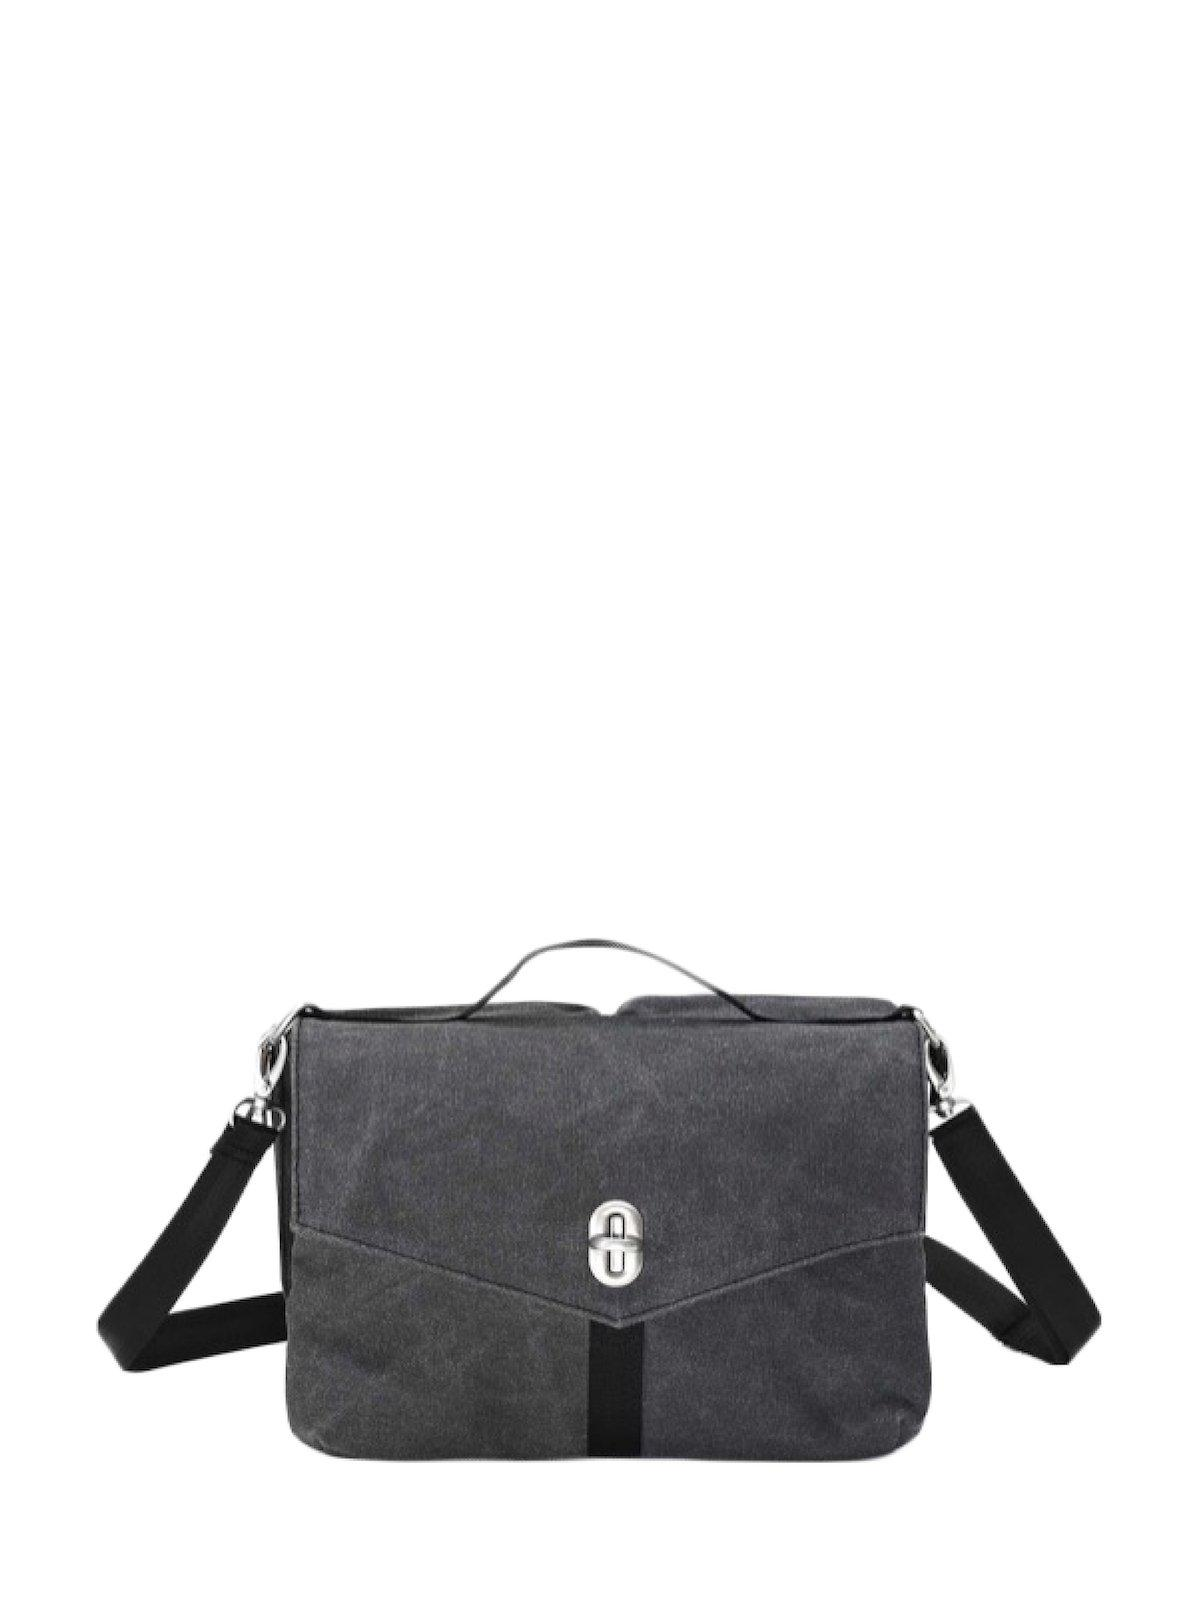 Qwstion Shoulder Bag Washed Black - MORE by Morello Indonesia